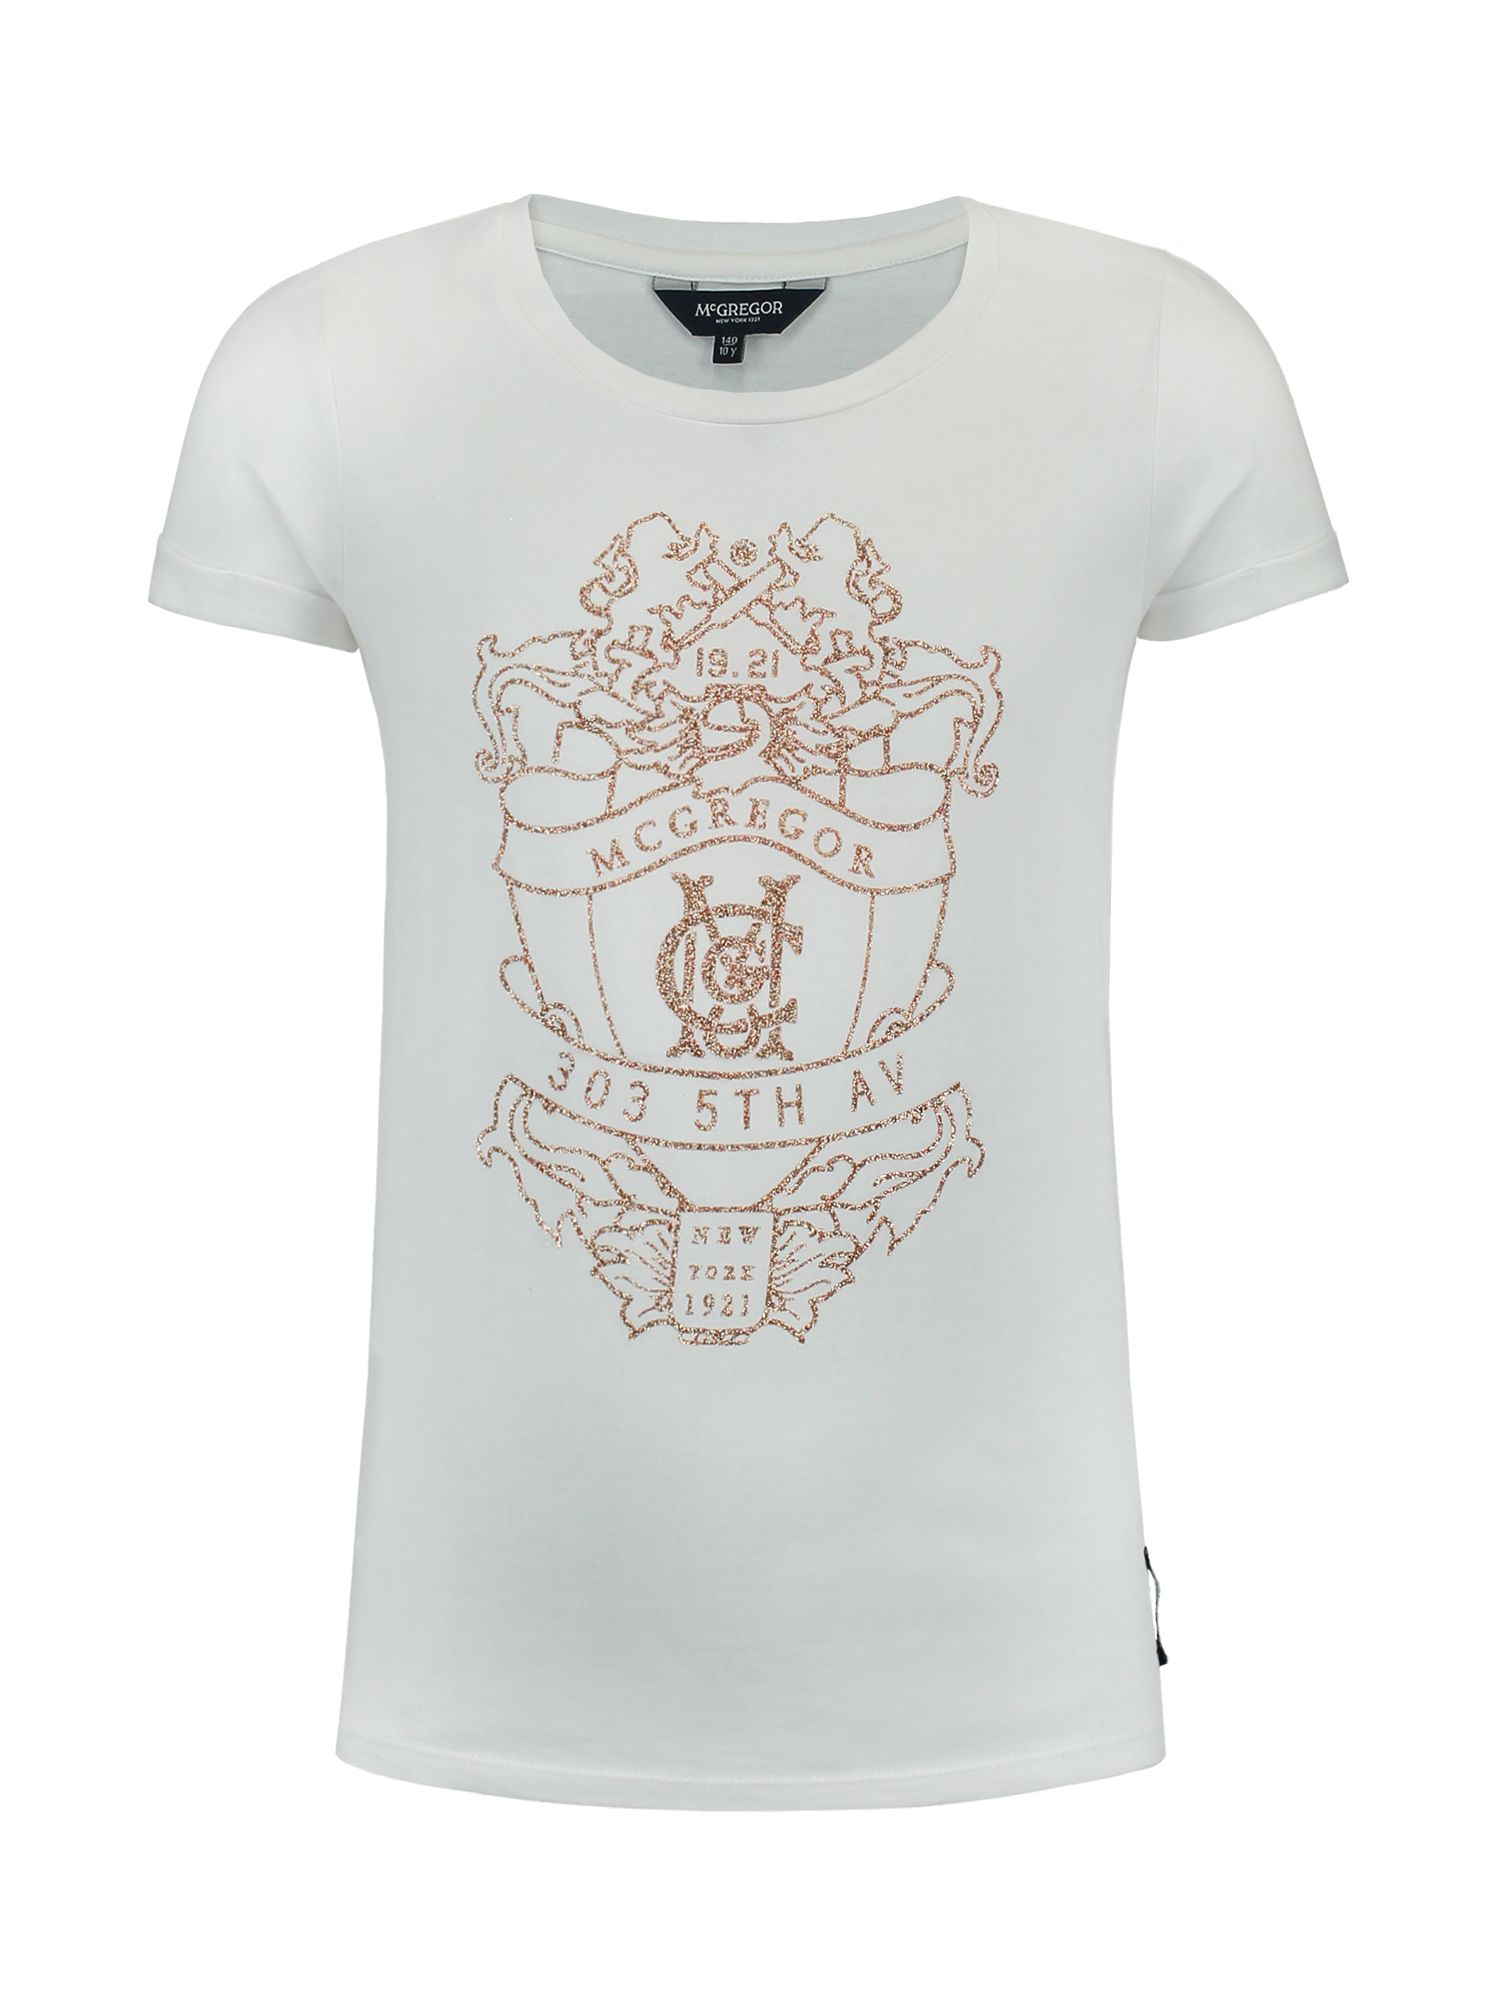 McGregor McGregor Girls T-shirt Nicky McG, White